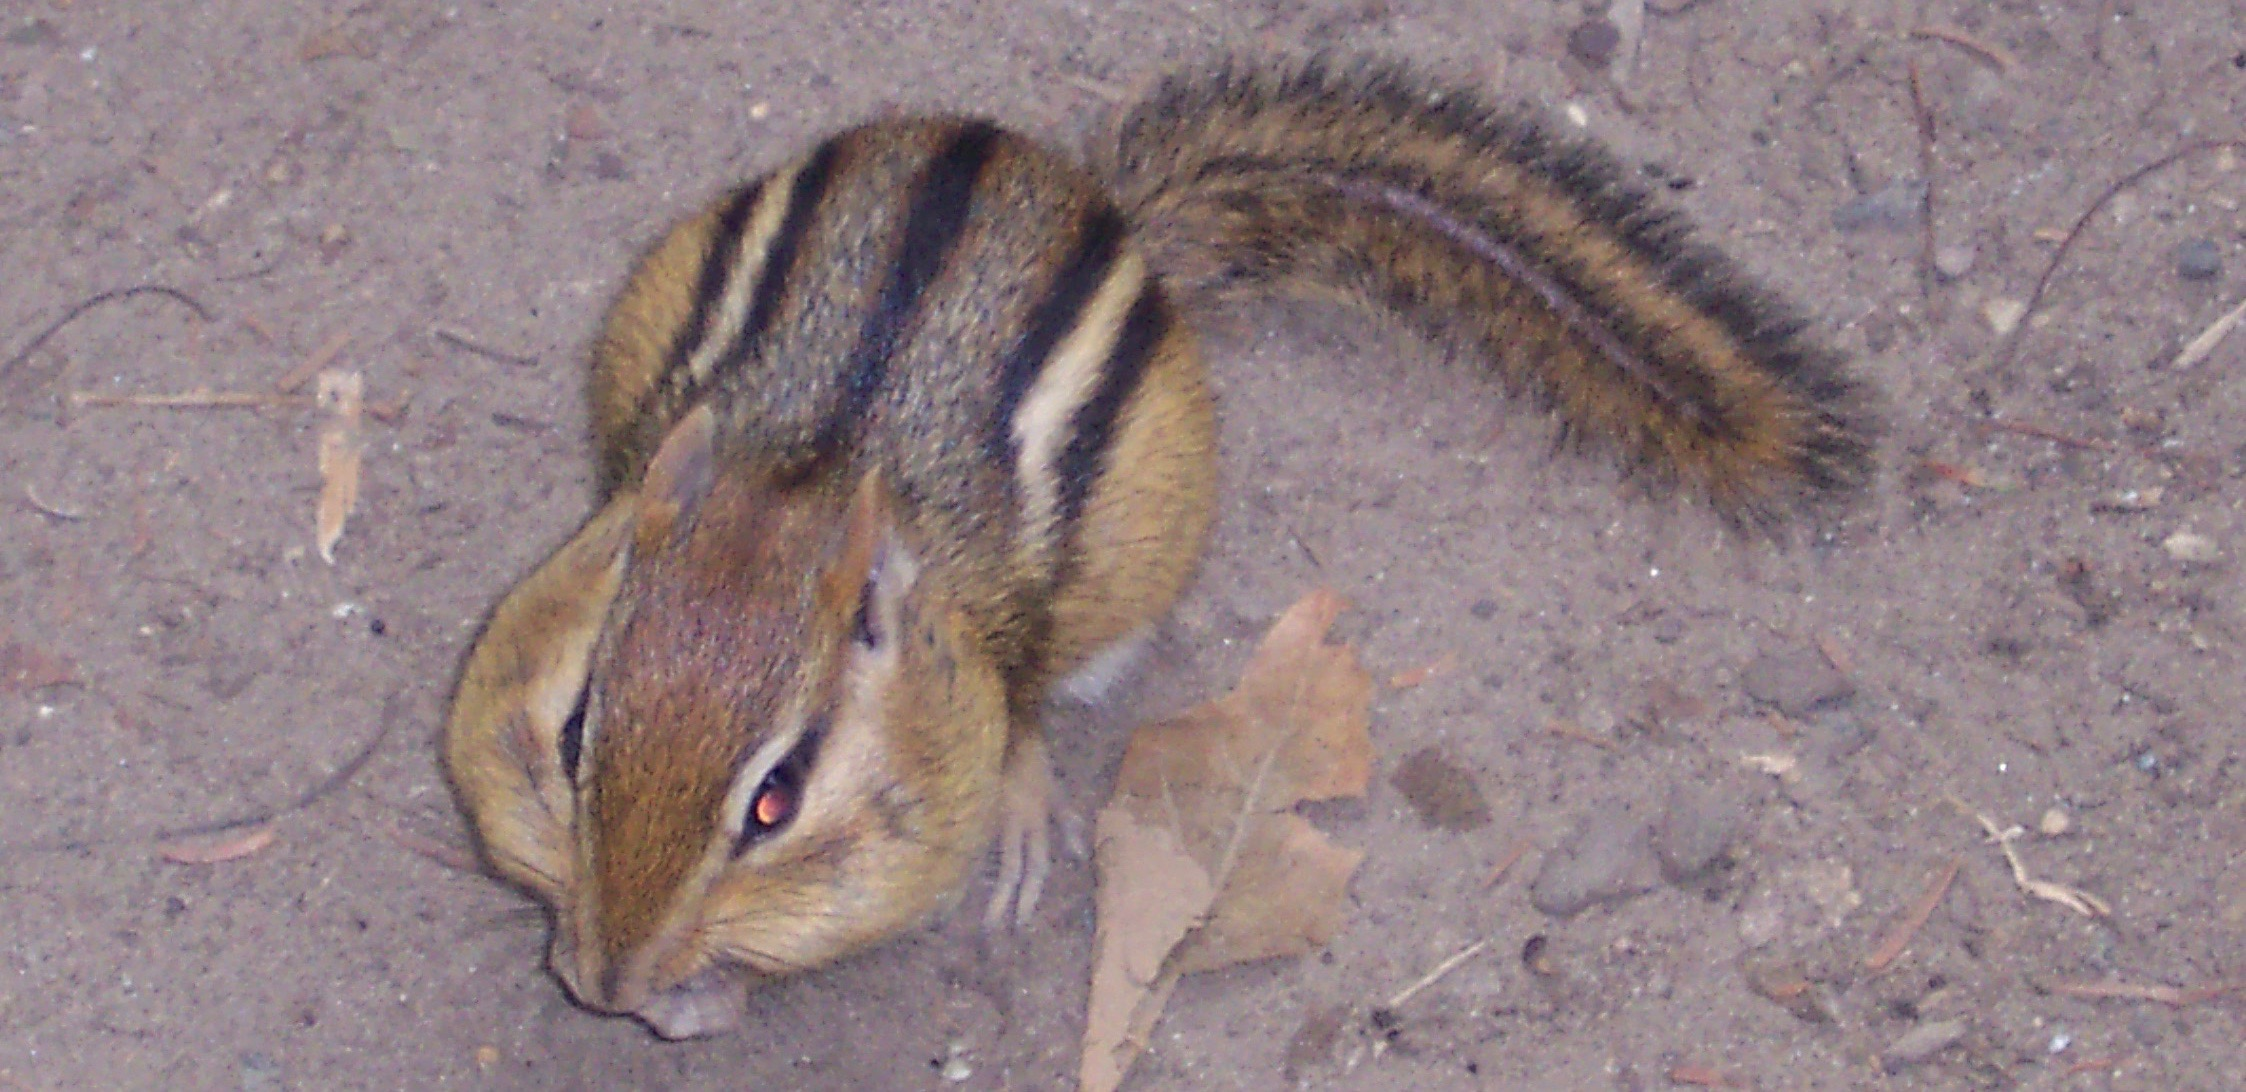 Chipmunk storing peanuts in cheeks